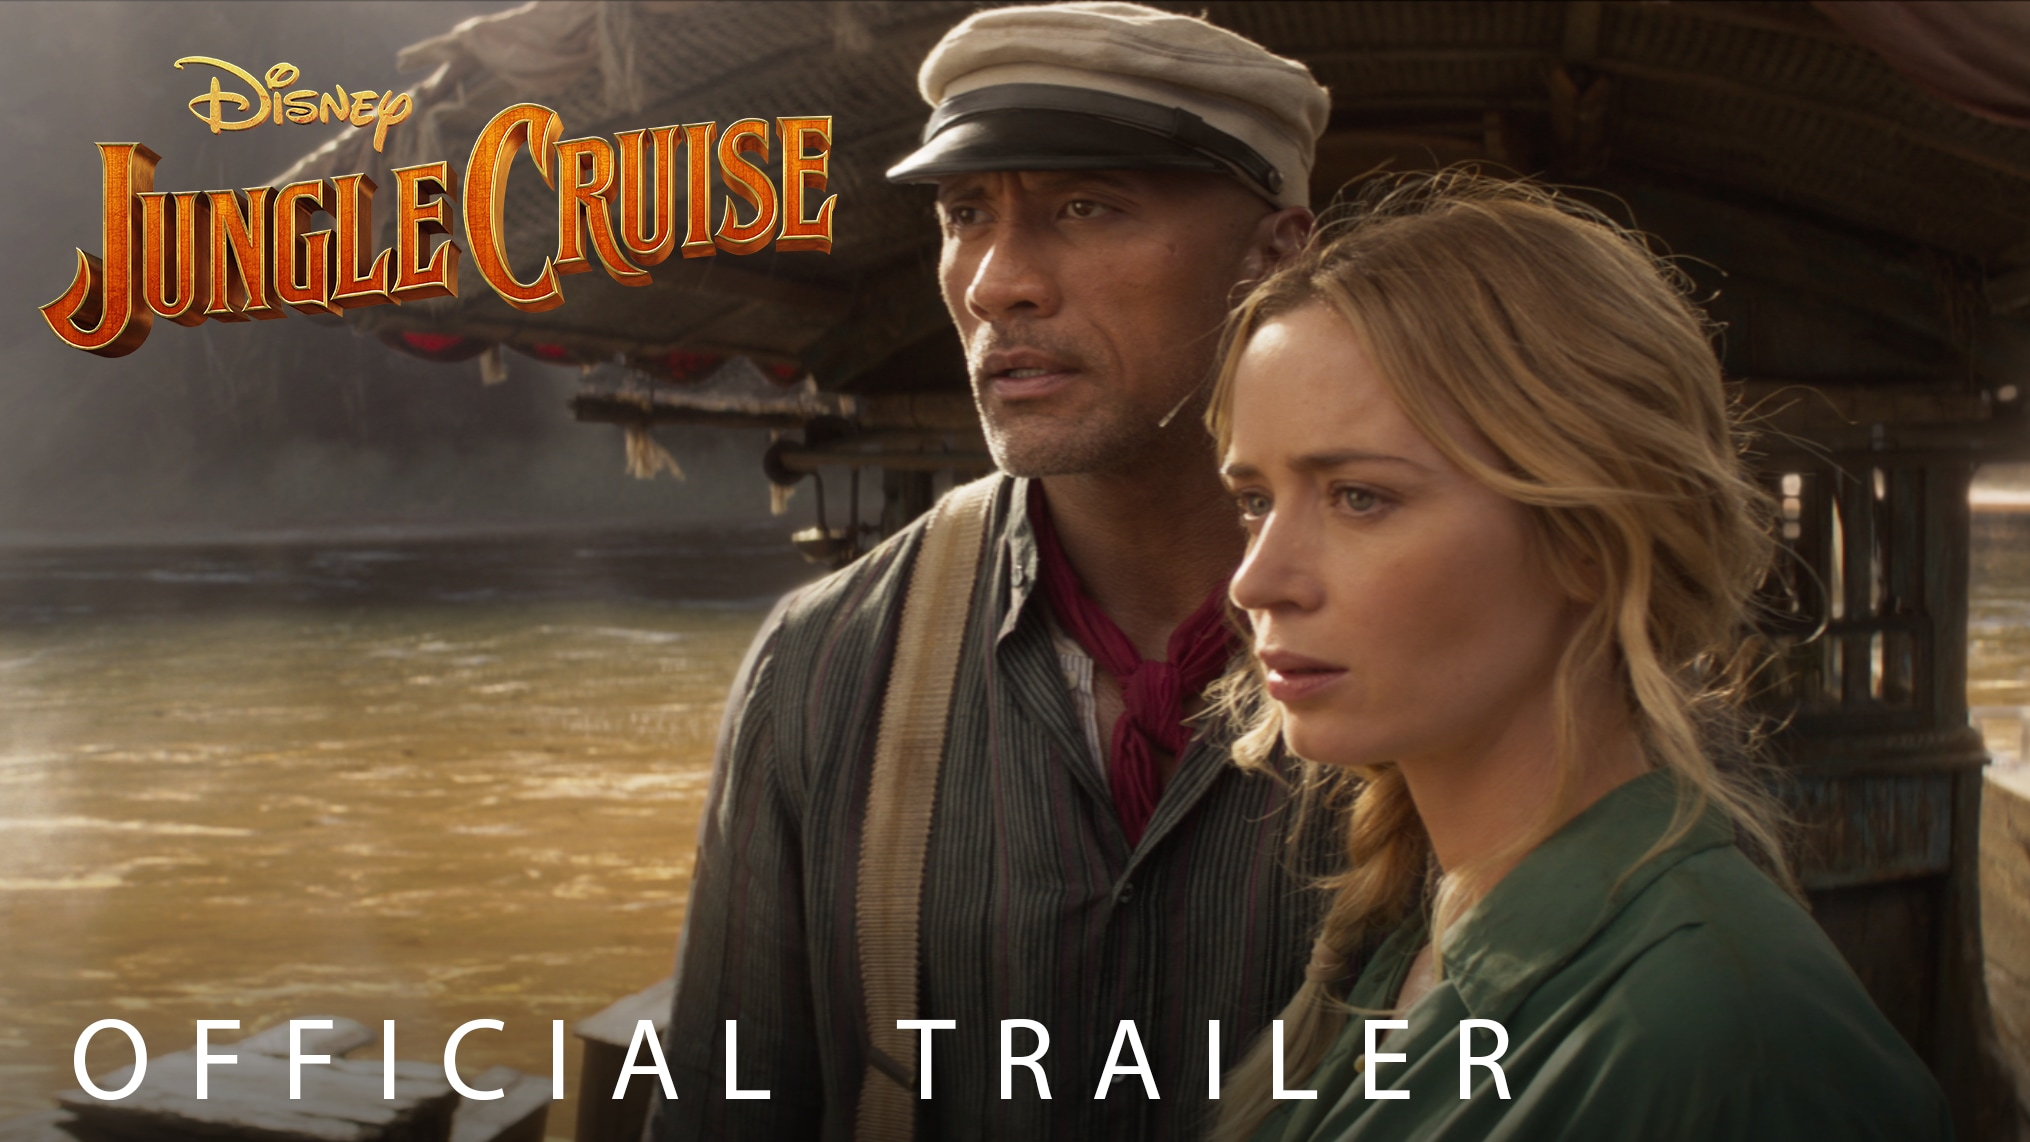 Disney's Jungle Cruise – New Trailer